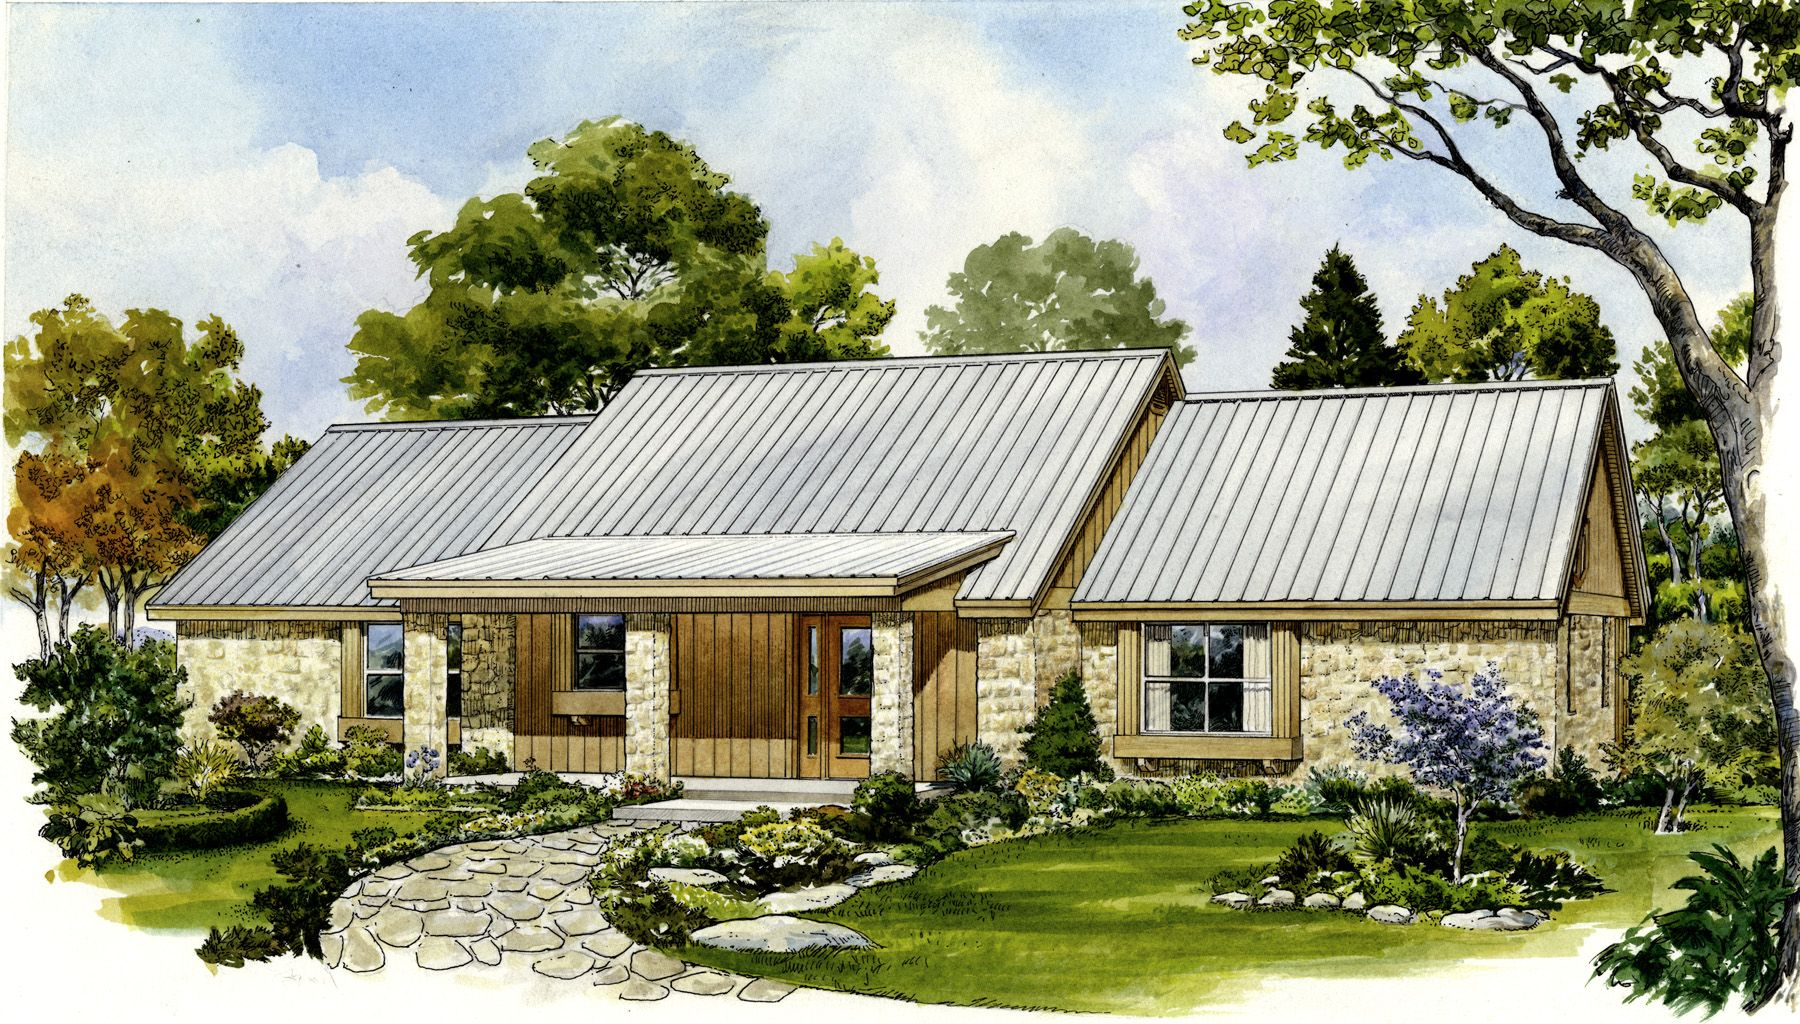 Ranch Retreat - 46012HC | Country, Hill Country, Ranch, 1st Floor Master  Suite, CAD Available, PDF | Architectural Designs